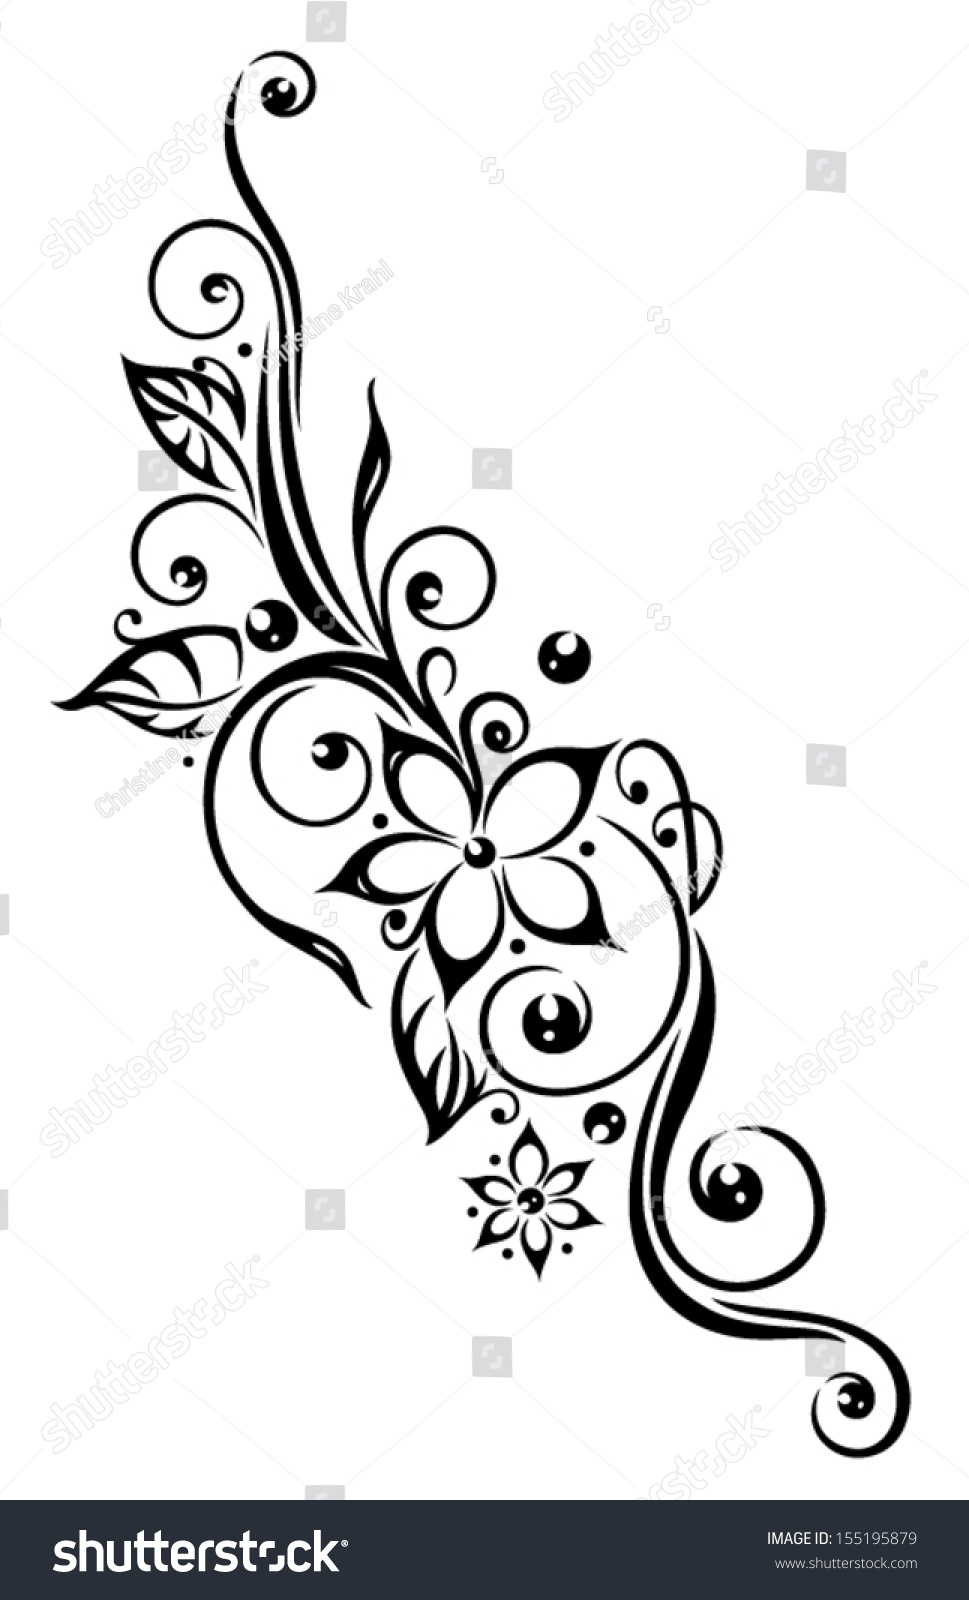 black flowers illustration tribal tattoo style stock vector 155195879 shutterstock. Black Bedroom Furniture Sets. Home Design Ideas